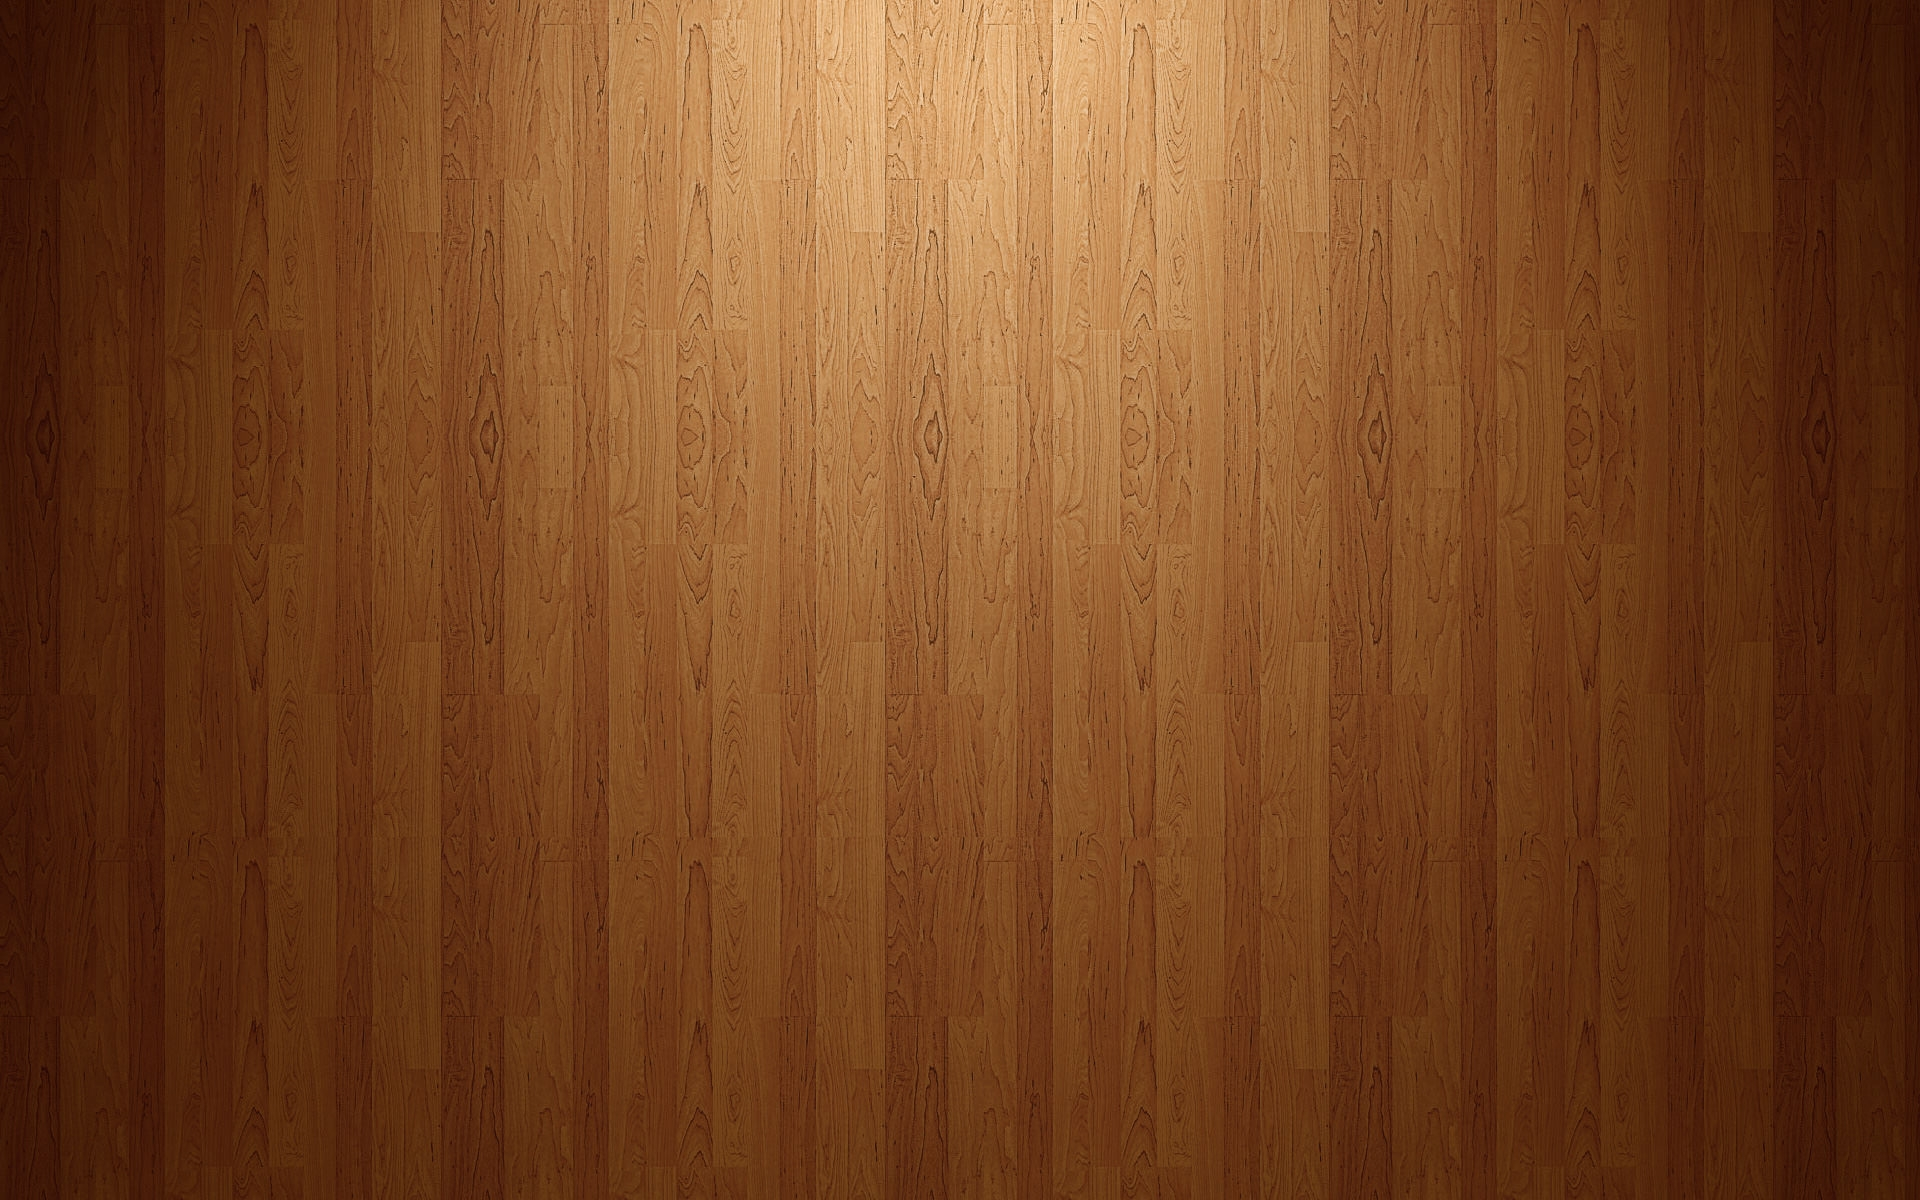 25 wood floor backgrounds freecreatives for Wood wallpaper for walls